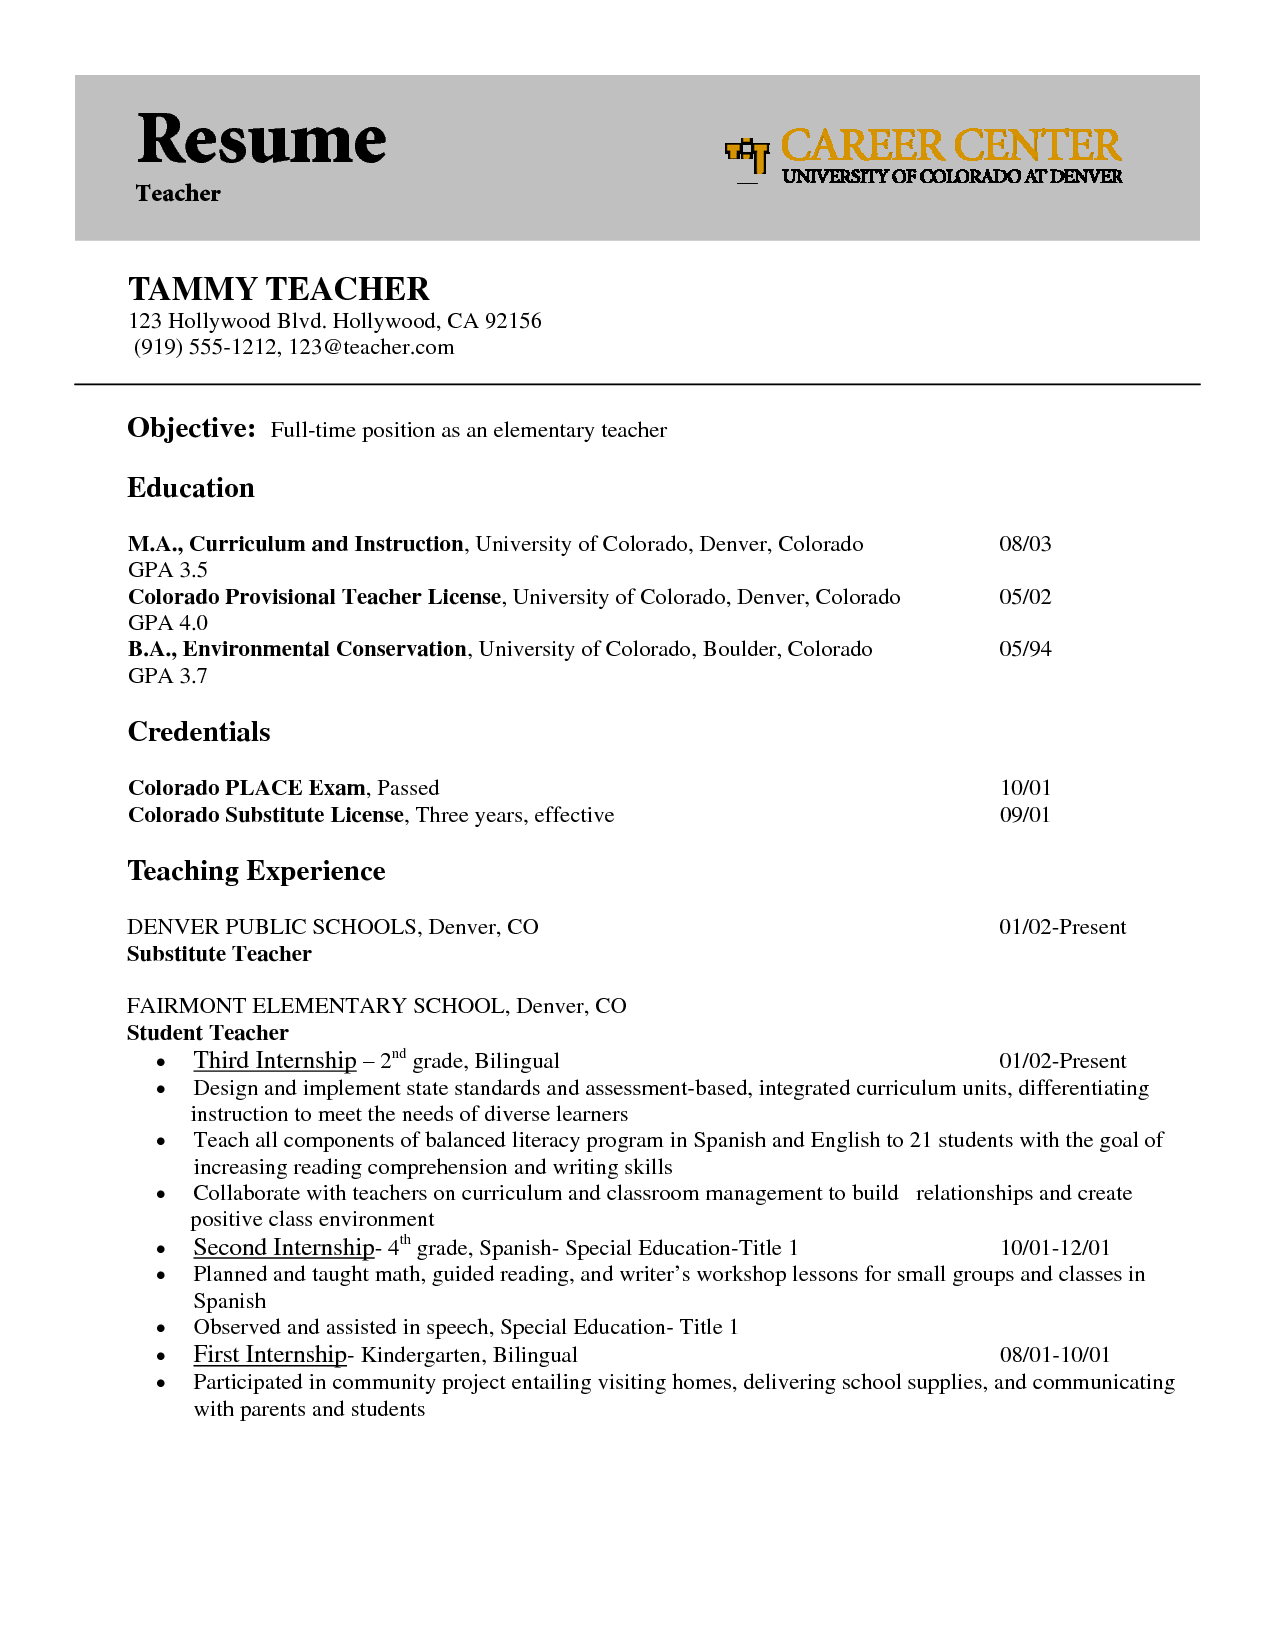 Teaching Resume Objective Teacher Cover Letters With Experiencejob Hunting Write A Great